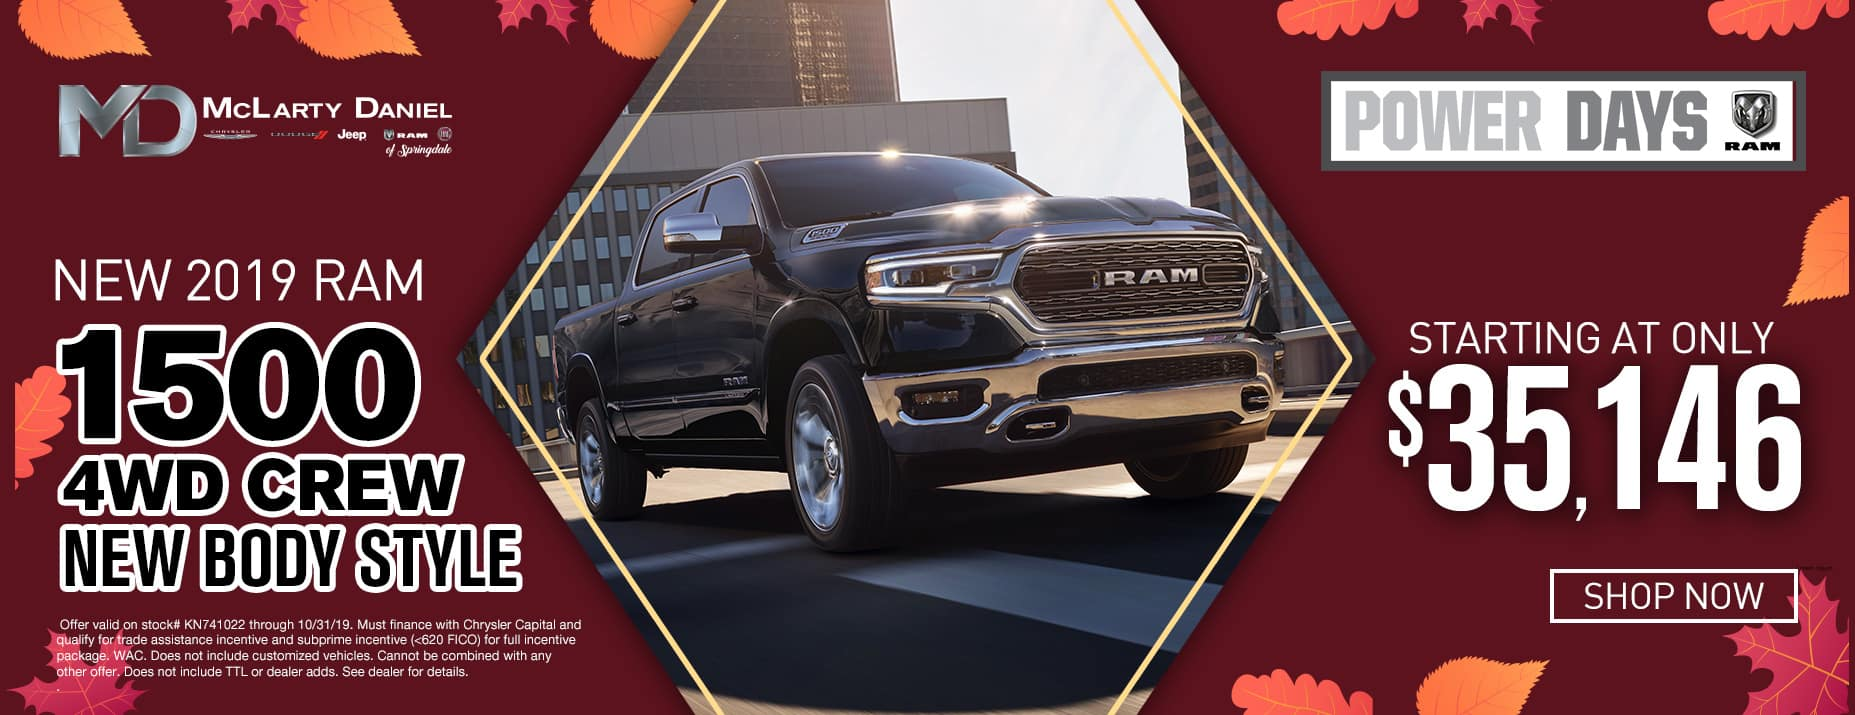 New 2019 Ram 4WD, starting at $35,146